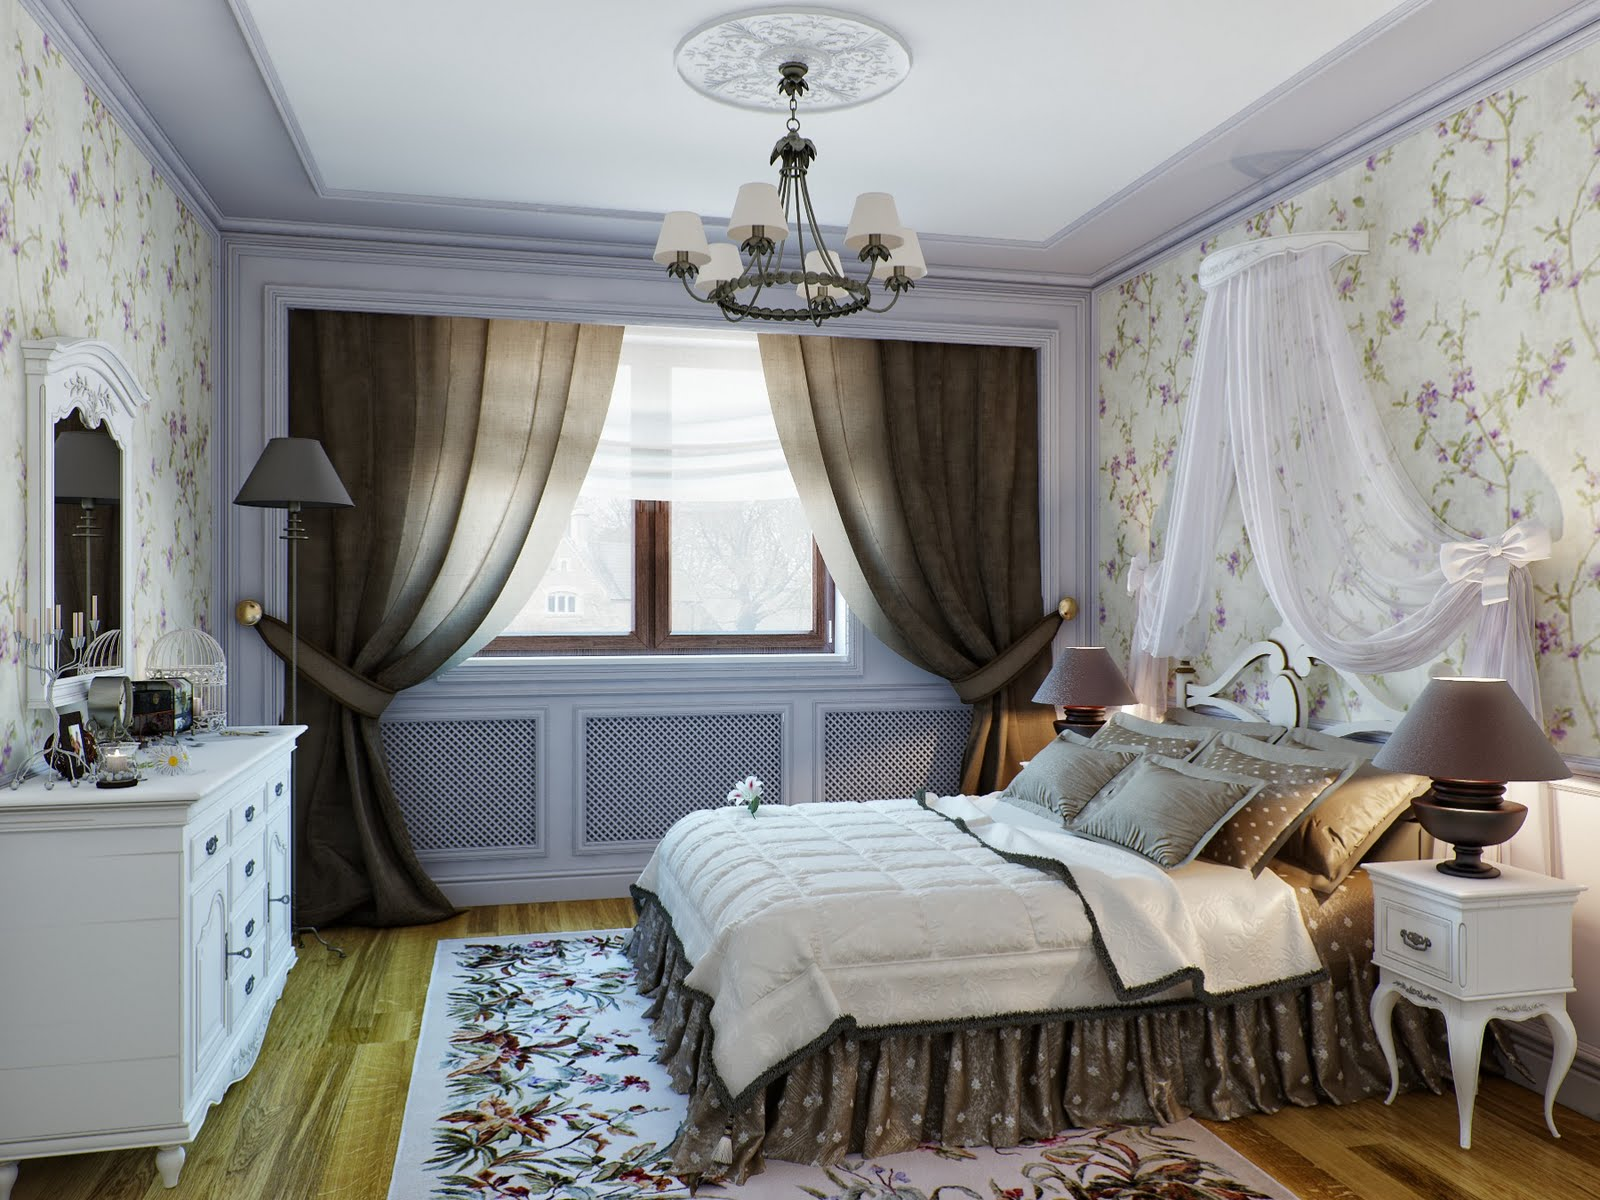 pics-of-bedroom-in-the-provence-style-1